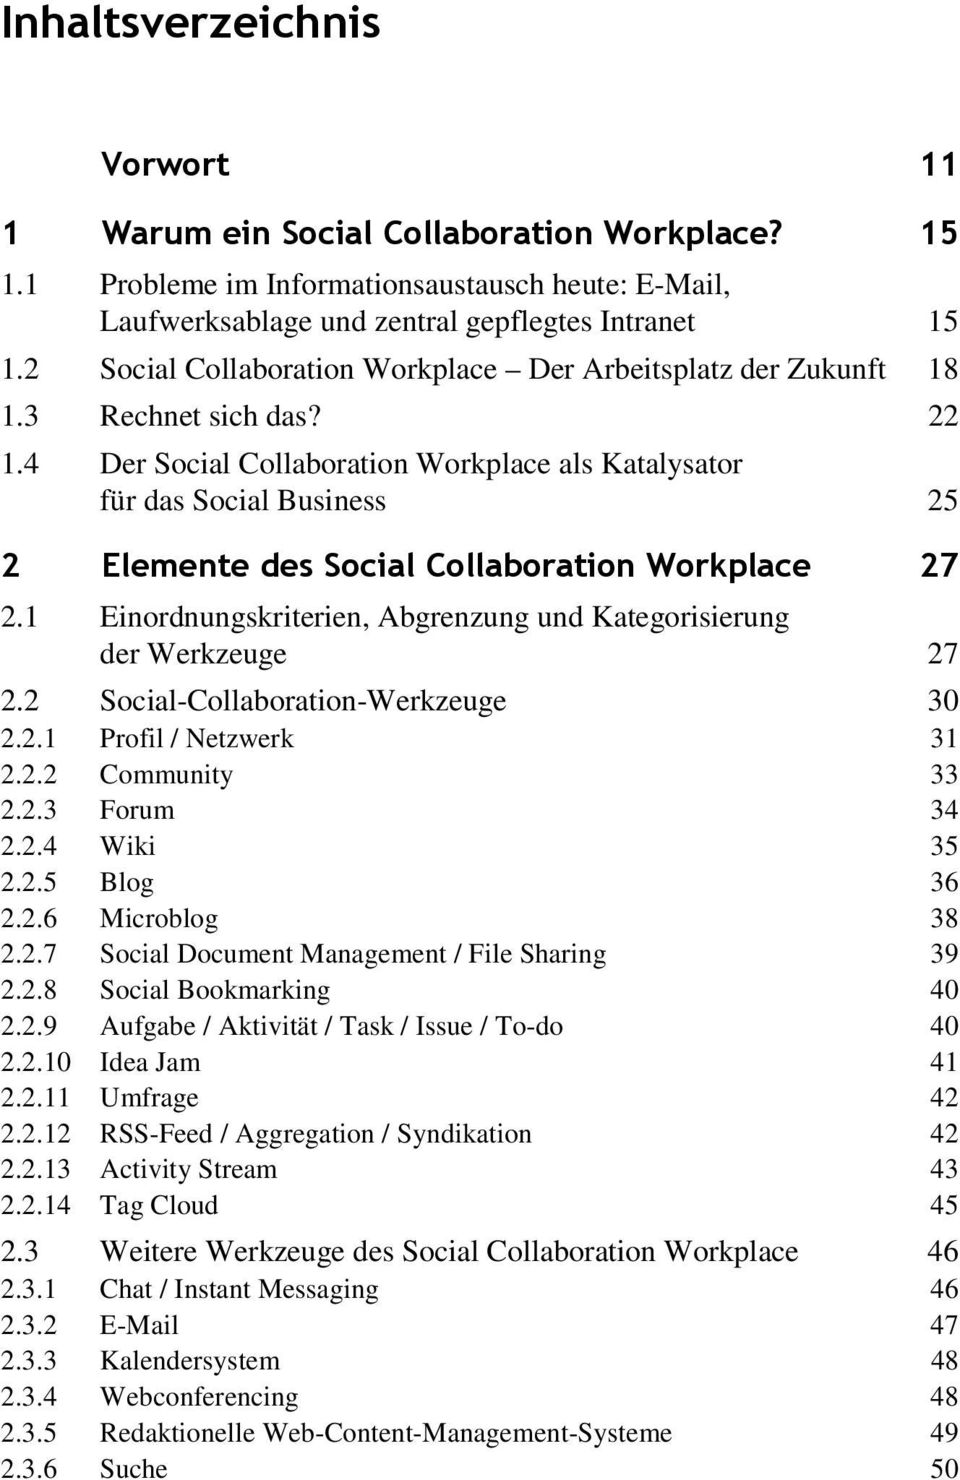 2 Social-Collaboration-Werkzeuge 30 2.2.1 Profil / Netzwerk 31 2.2.2 Community 33 2.2.3 Forum 34 2.2.4 Wiki 35 2.2.5 Blog 36 2.2.6 Microblog 38 2.2.7 Social Document Management / File Sharing 39 2.2.8 Social Bookmarking 40 2.